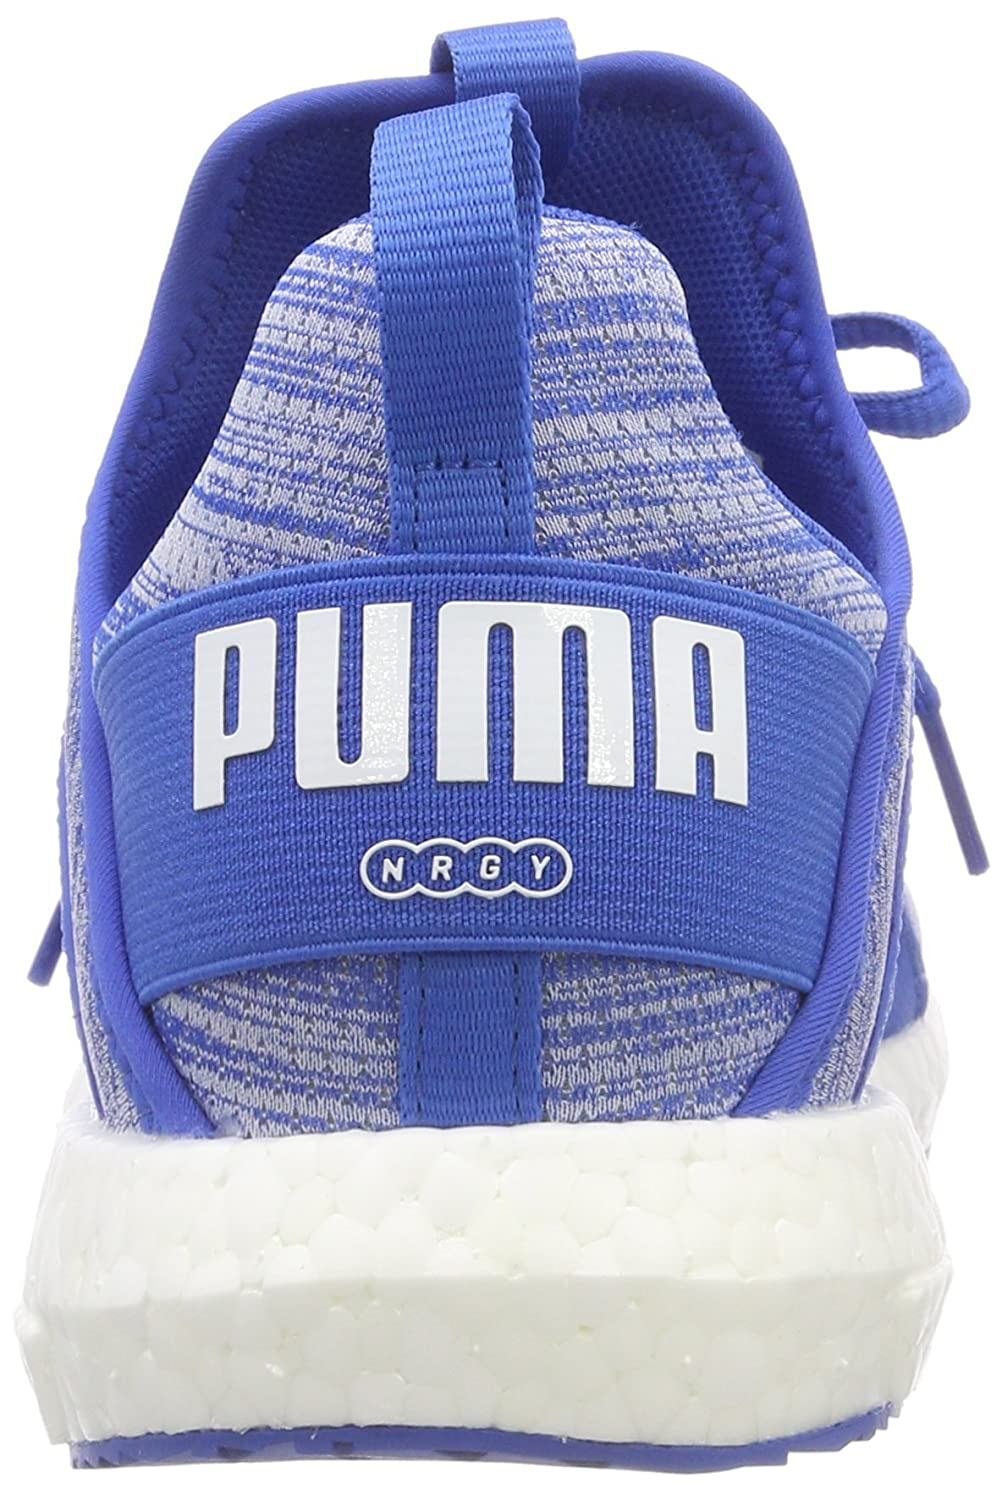 25eca5575fa Puma Unisex Kid s Mega NRGY Heather Knit Jr Sneakers  Buy Online at Low  Prices in India - Amazon.in